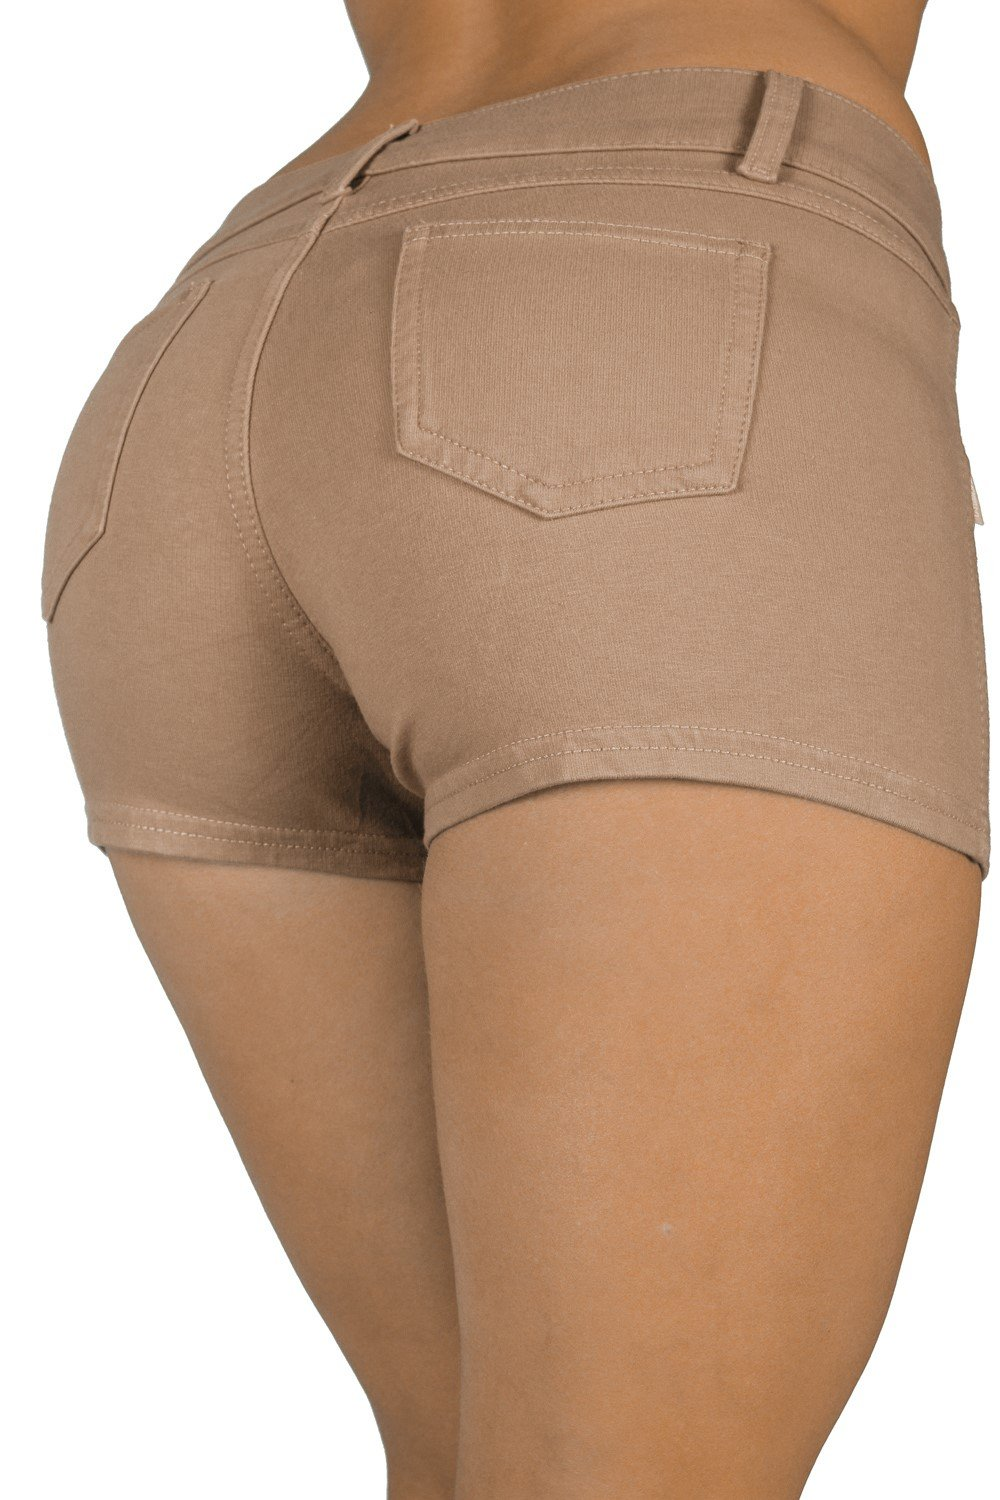 Basic Booty Shorts Premium Stretch French Terry Moleton With a gentle butt lifting stitching in Khaki Size S